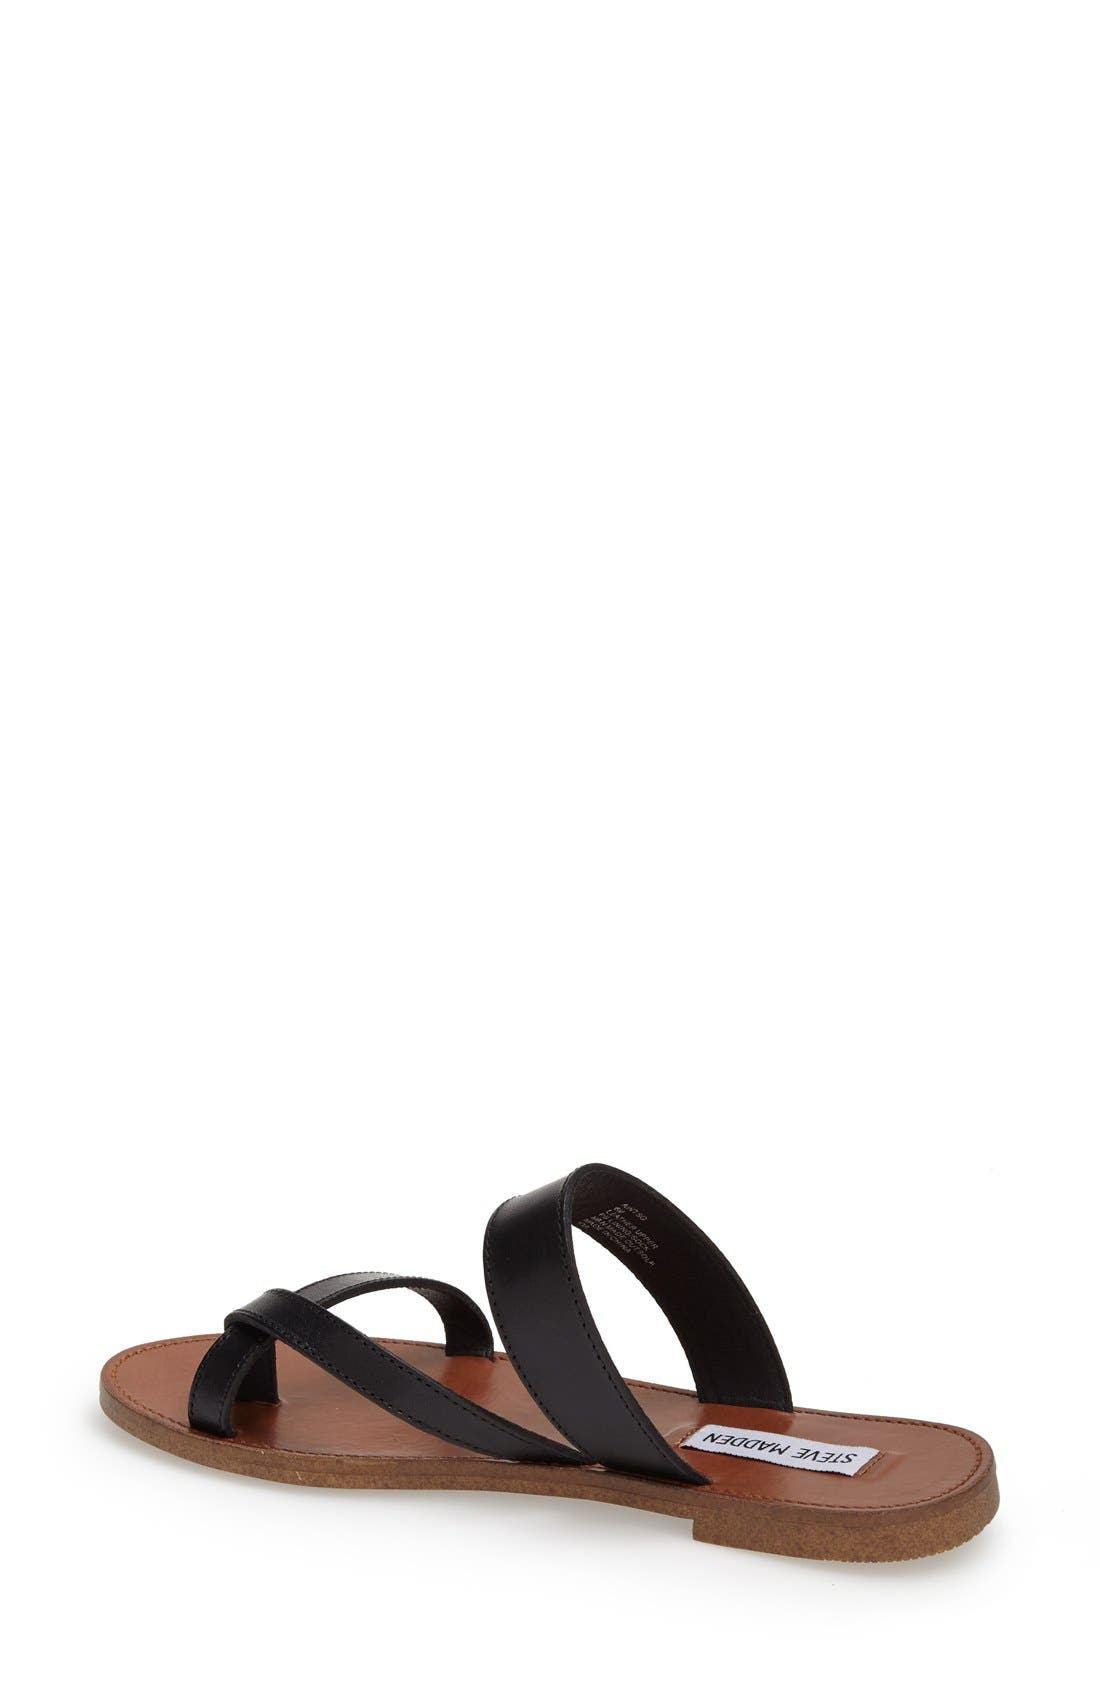 Alternate Image 2  - Steve Madden 'Aintso' Strappy Leather Toe Ring Sandal (Women)